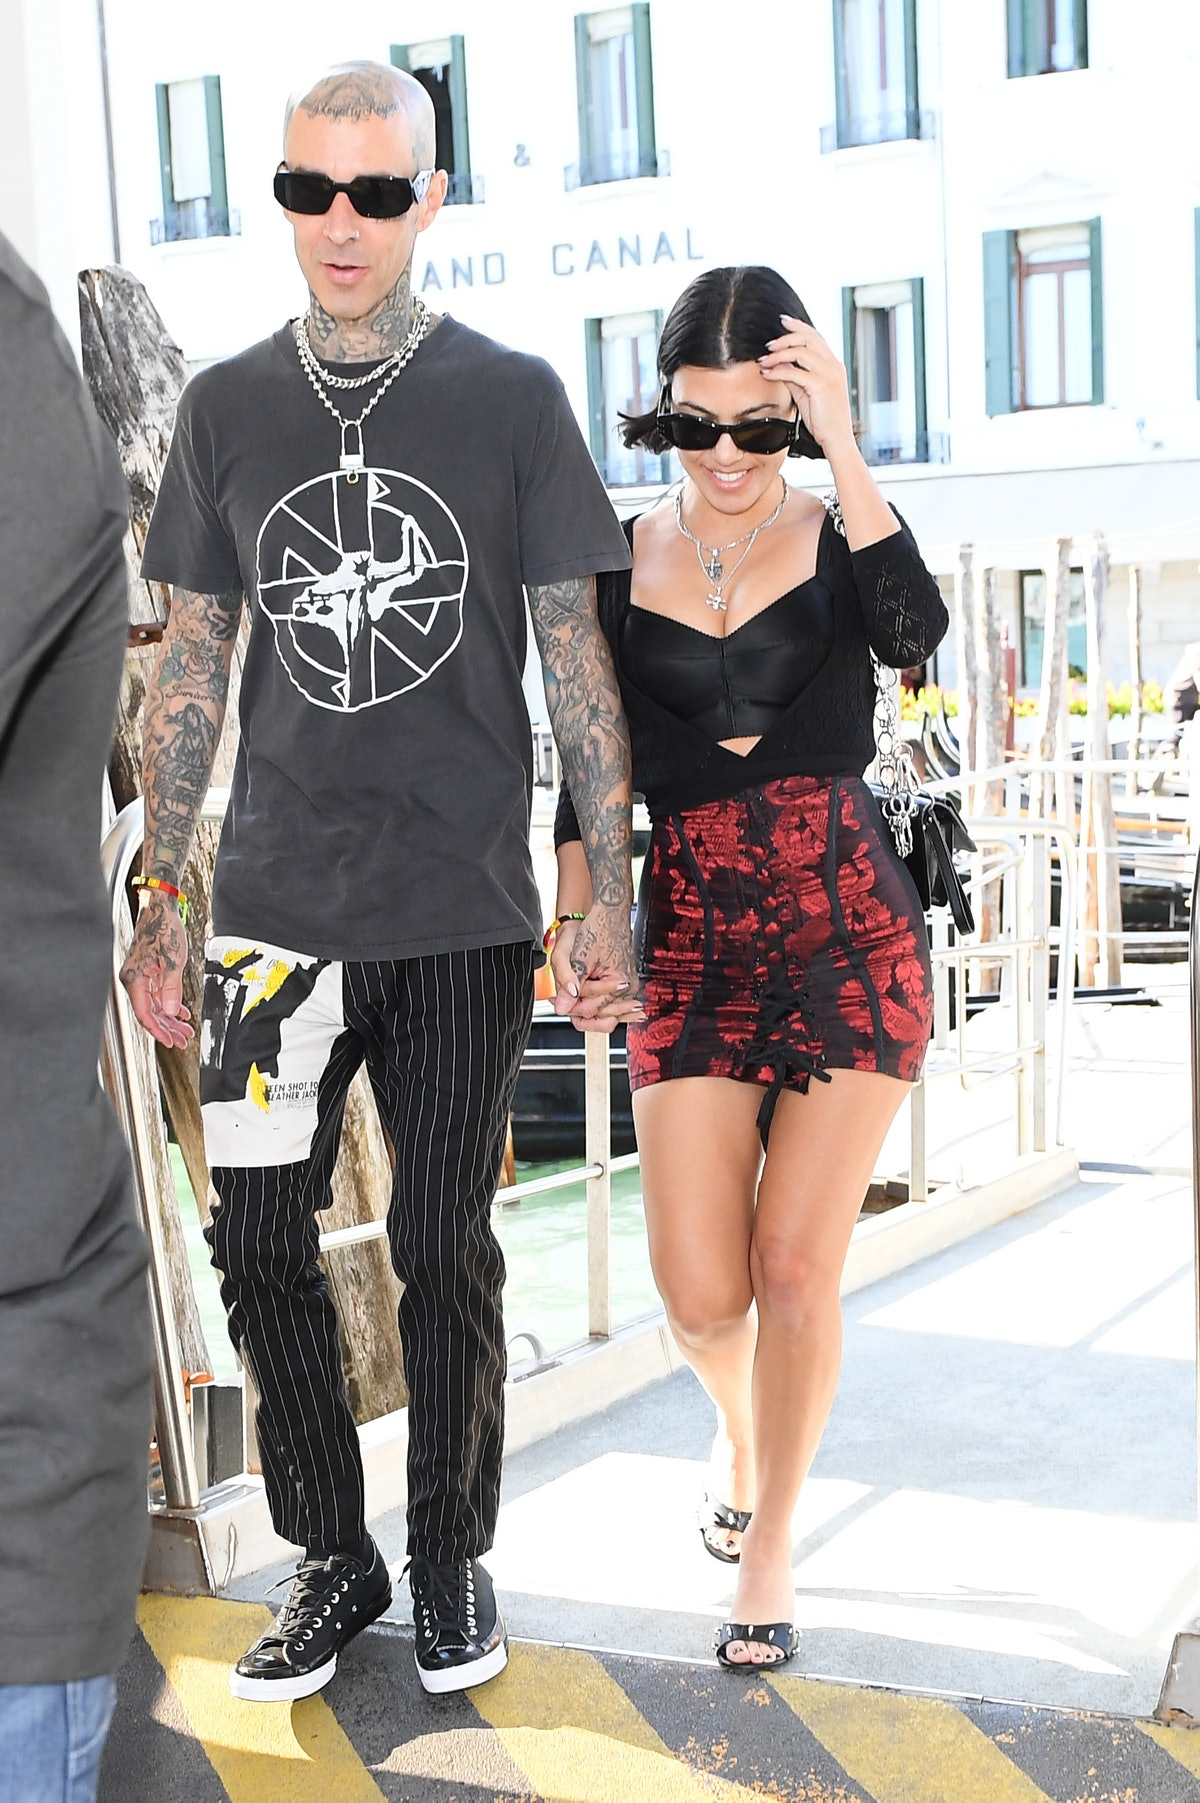 Kourtney Kardashian and Travis Barker are seen walking and smiling on August 29, 2021 in Venice, Ita...